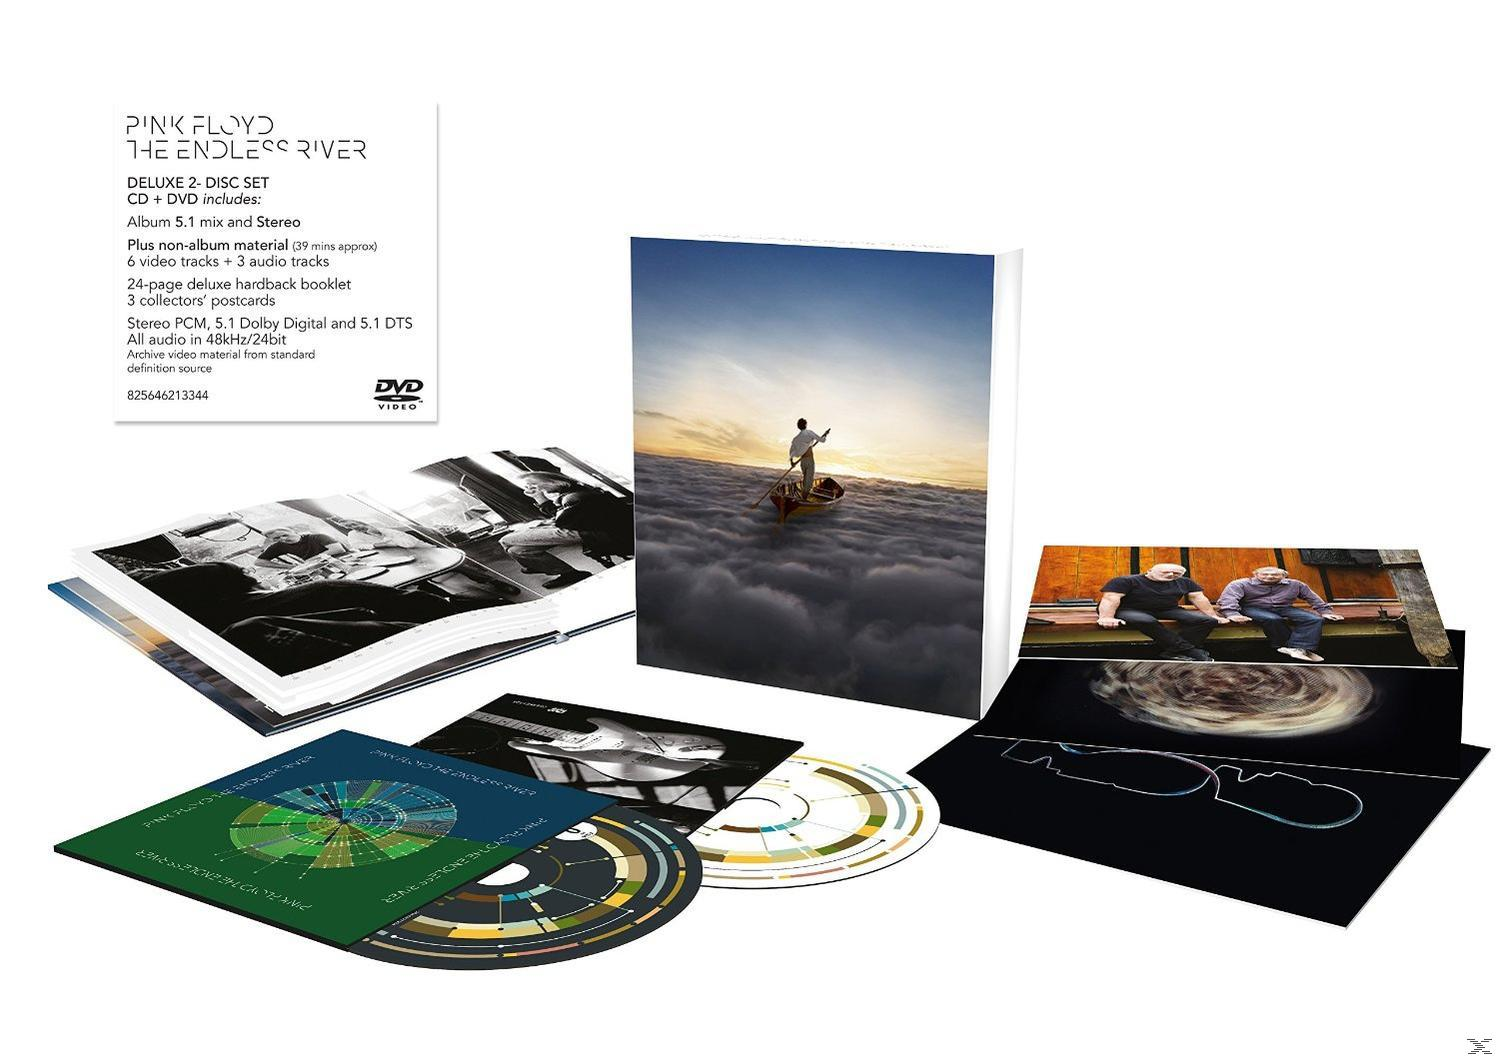 ENDLESS RIVER (CD+DVD)